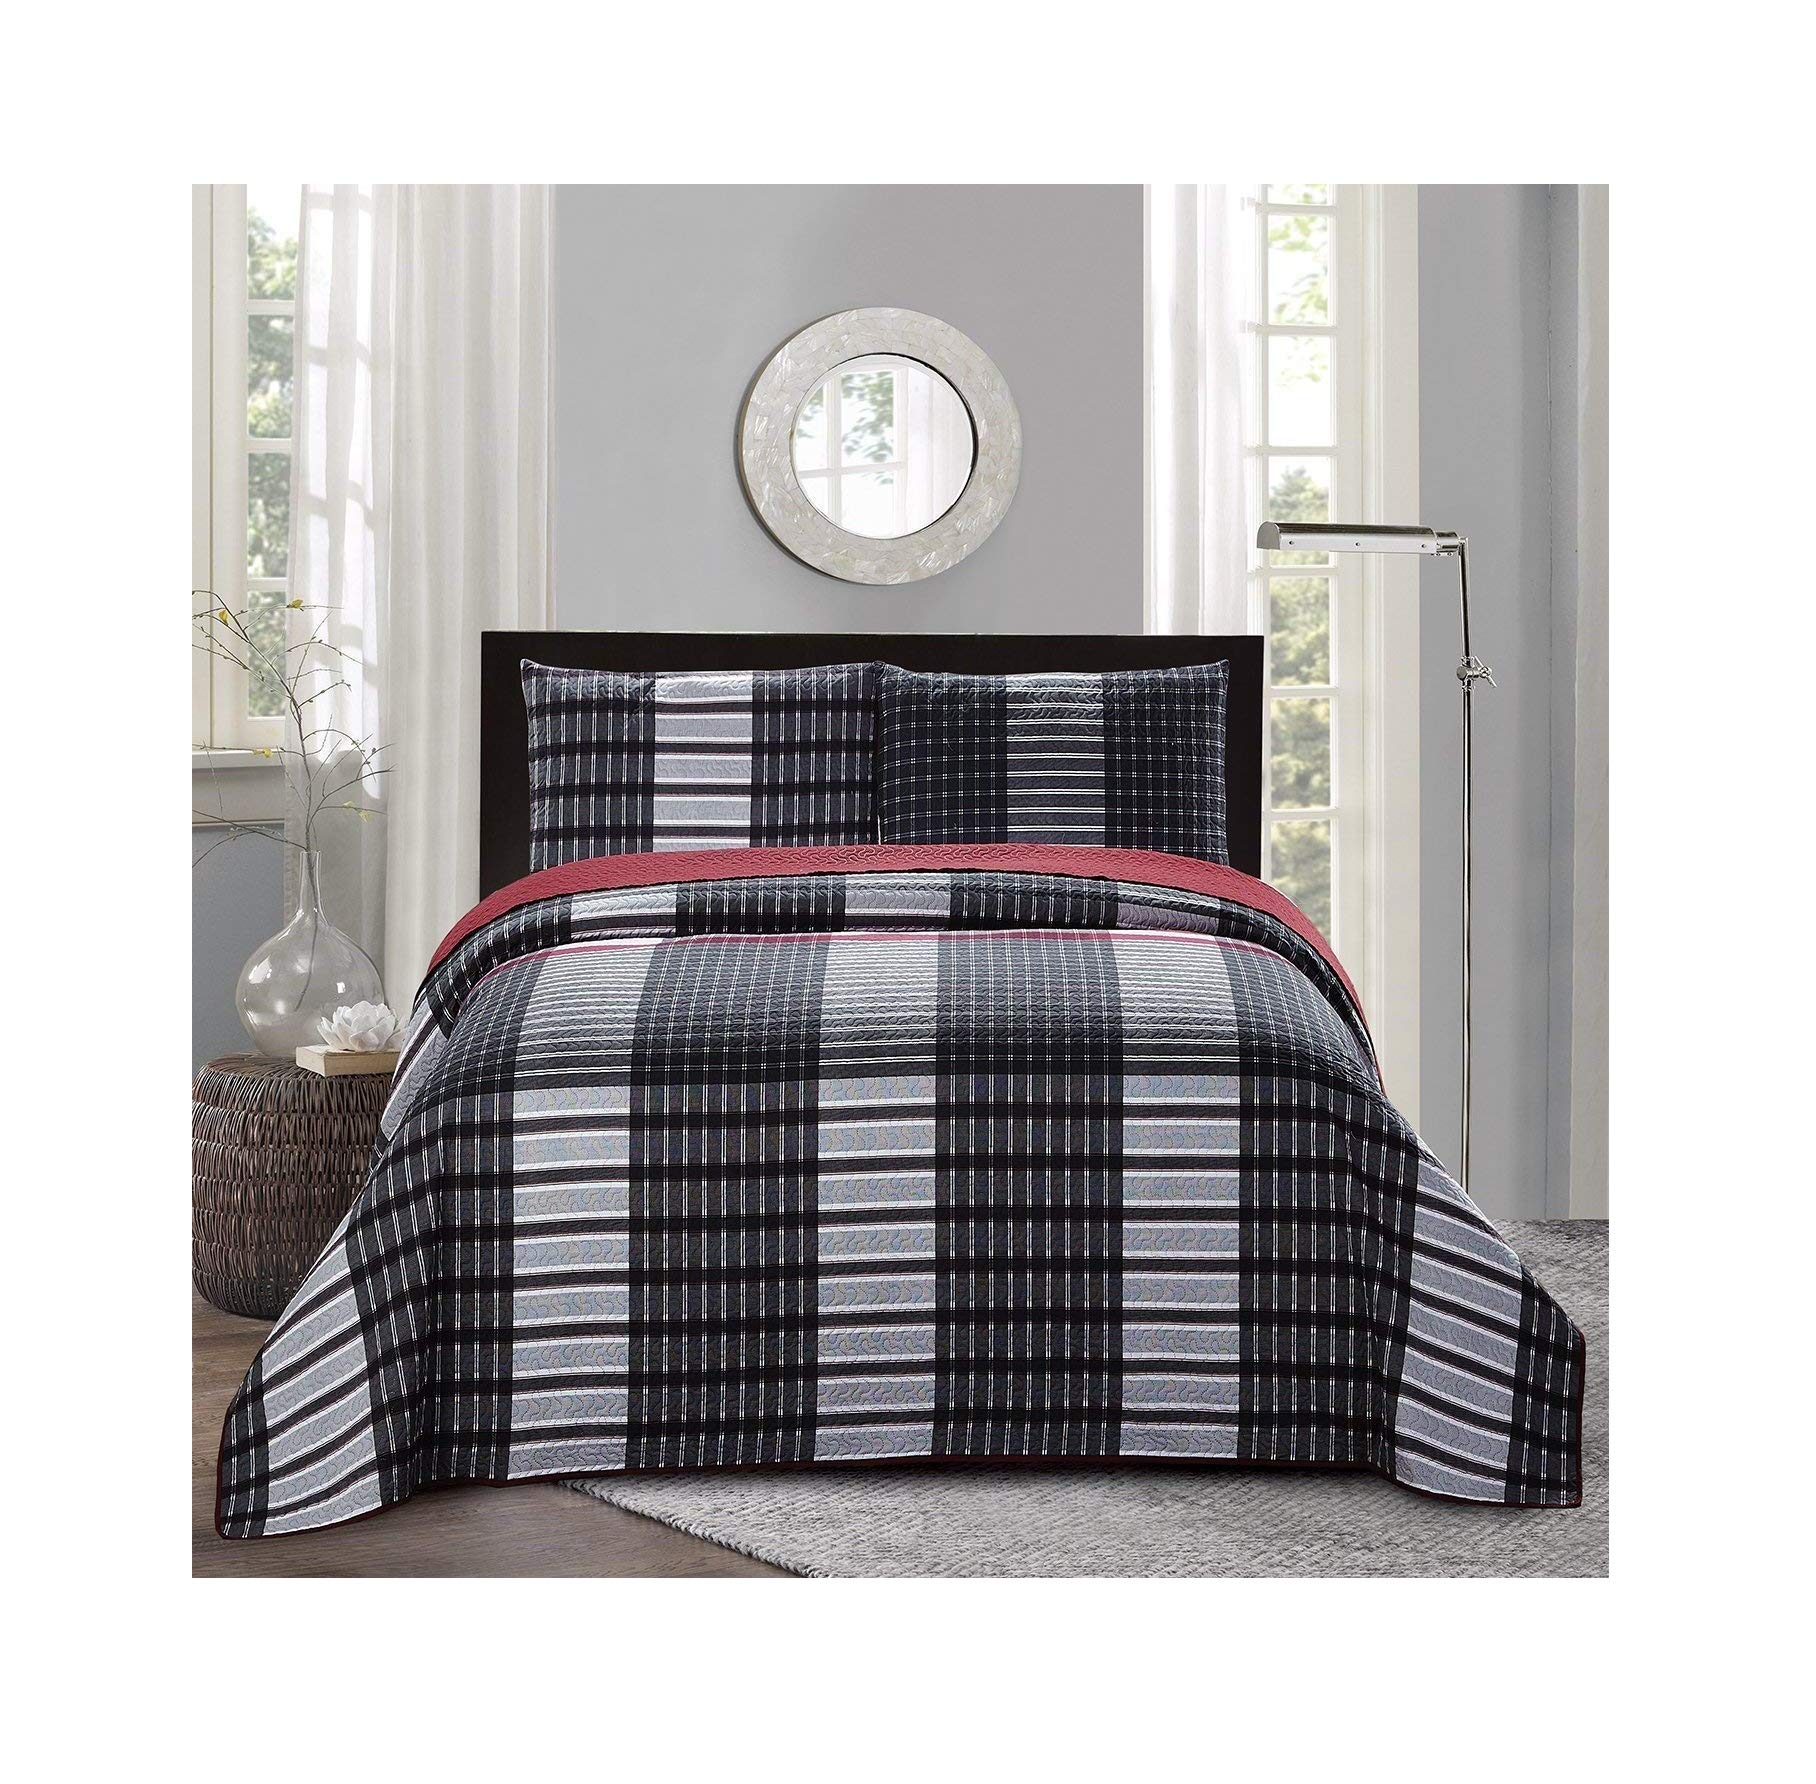 All American Collection New 3pc Plaid Printed Reversible Bedspread/Quilt Set (King / Cal King Size)